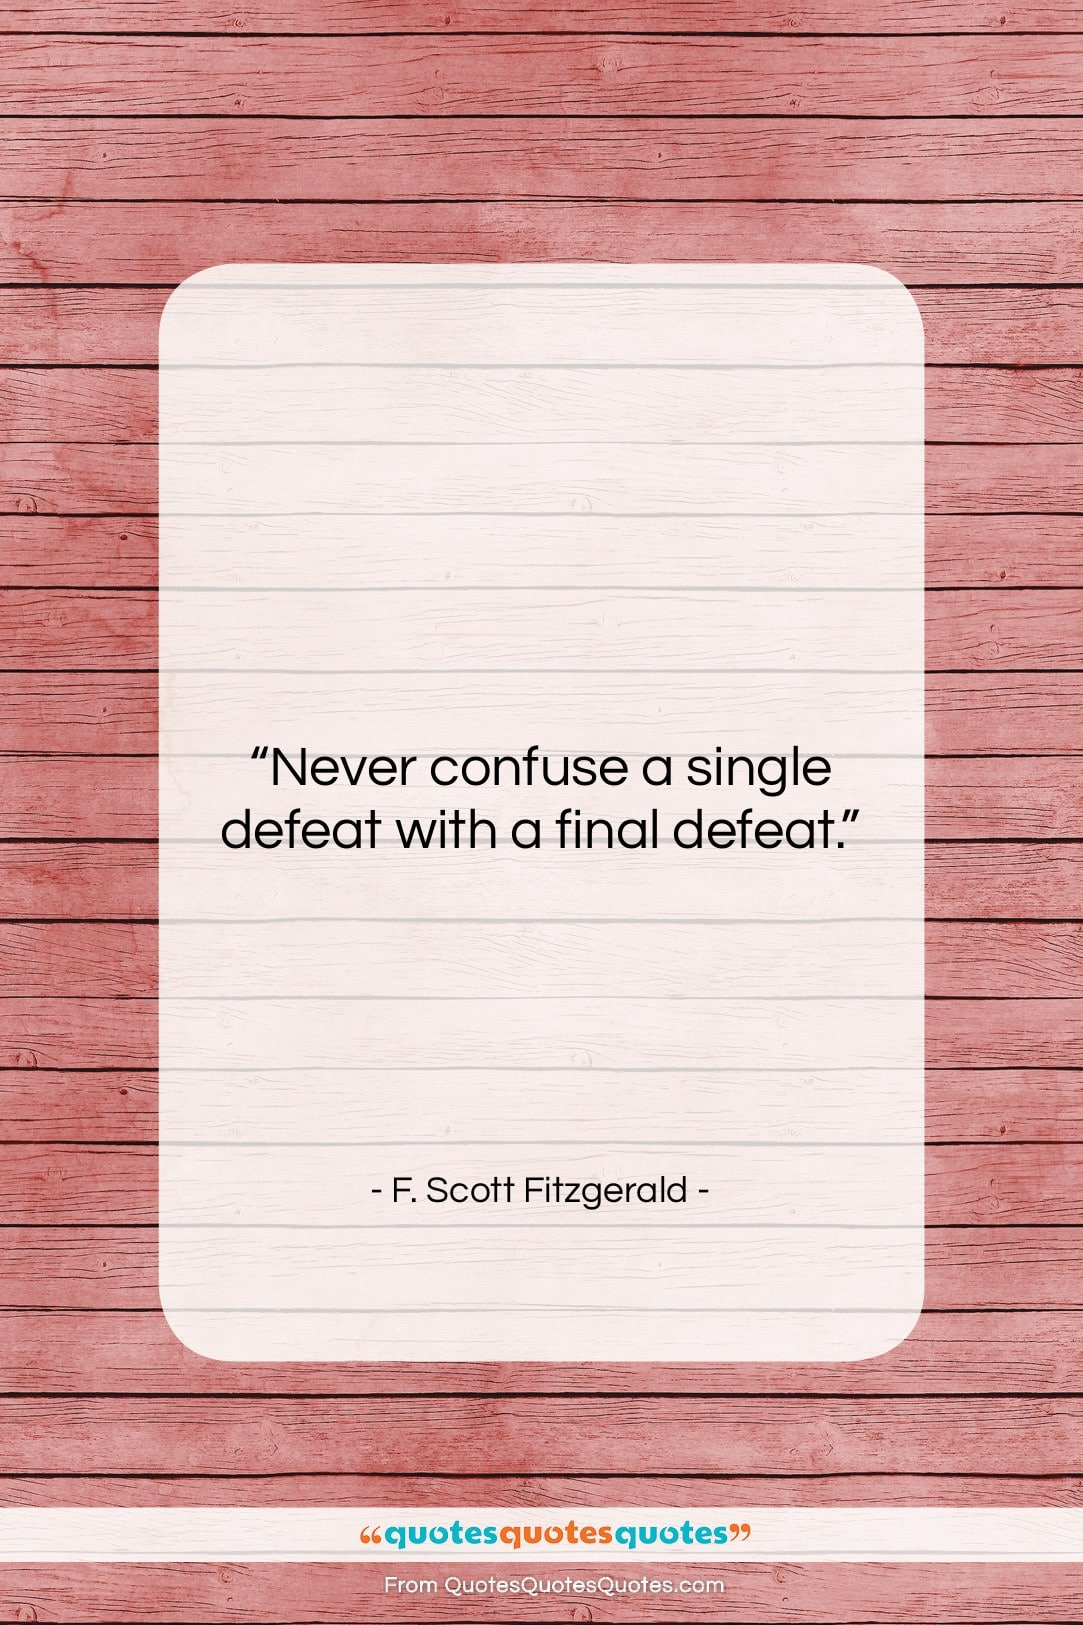 Get the whole F. Scott Fitzgerald quote: \